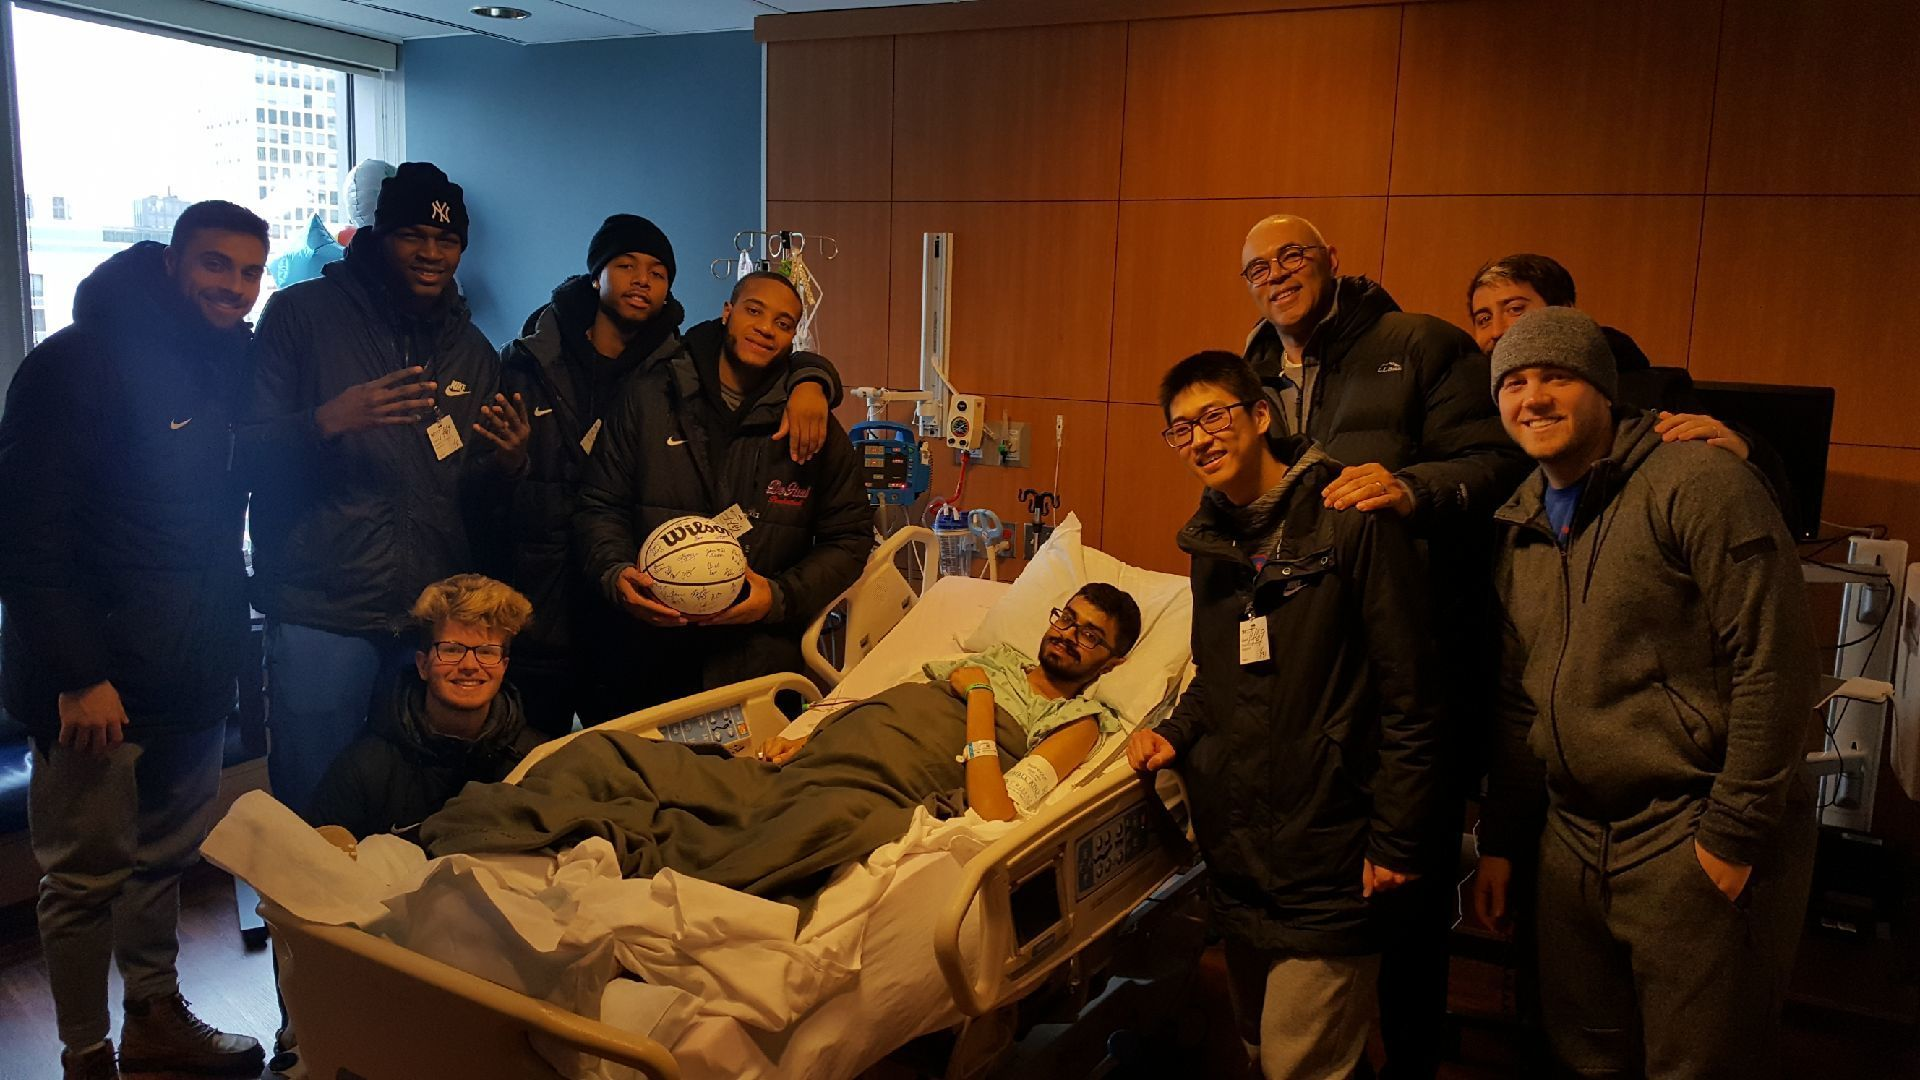 DePaul basketball rallies around their 20-year-old student manager who is battling cancer: 'Aameer is getting what he put out'